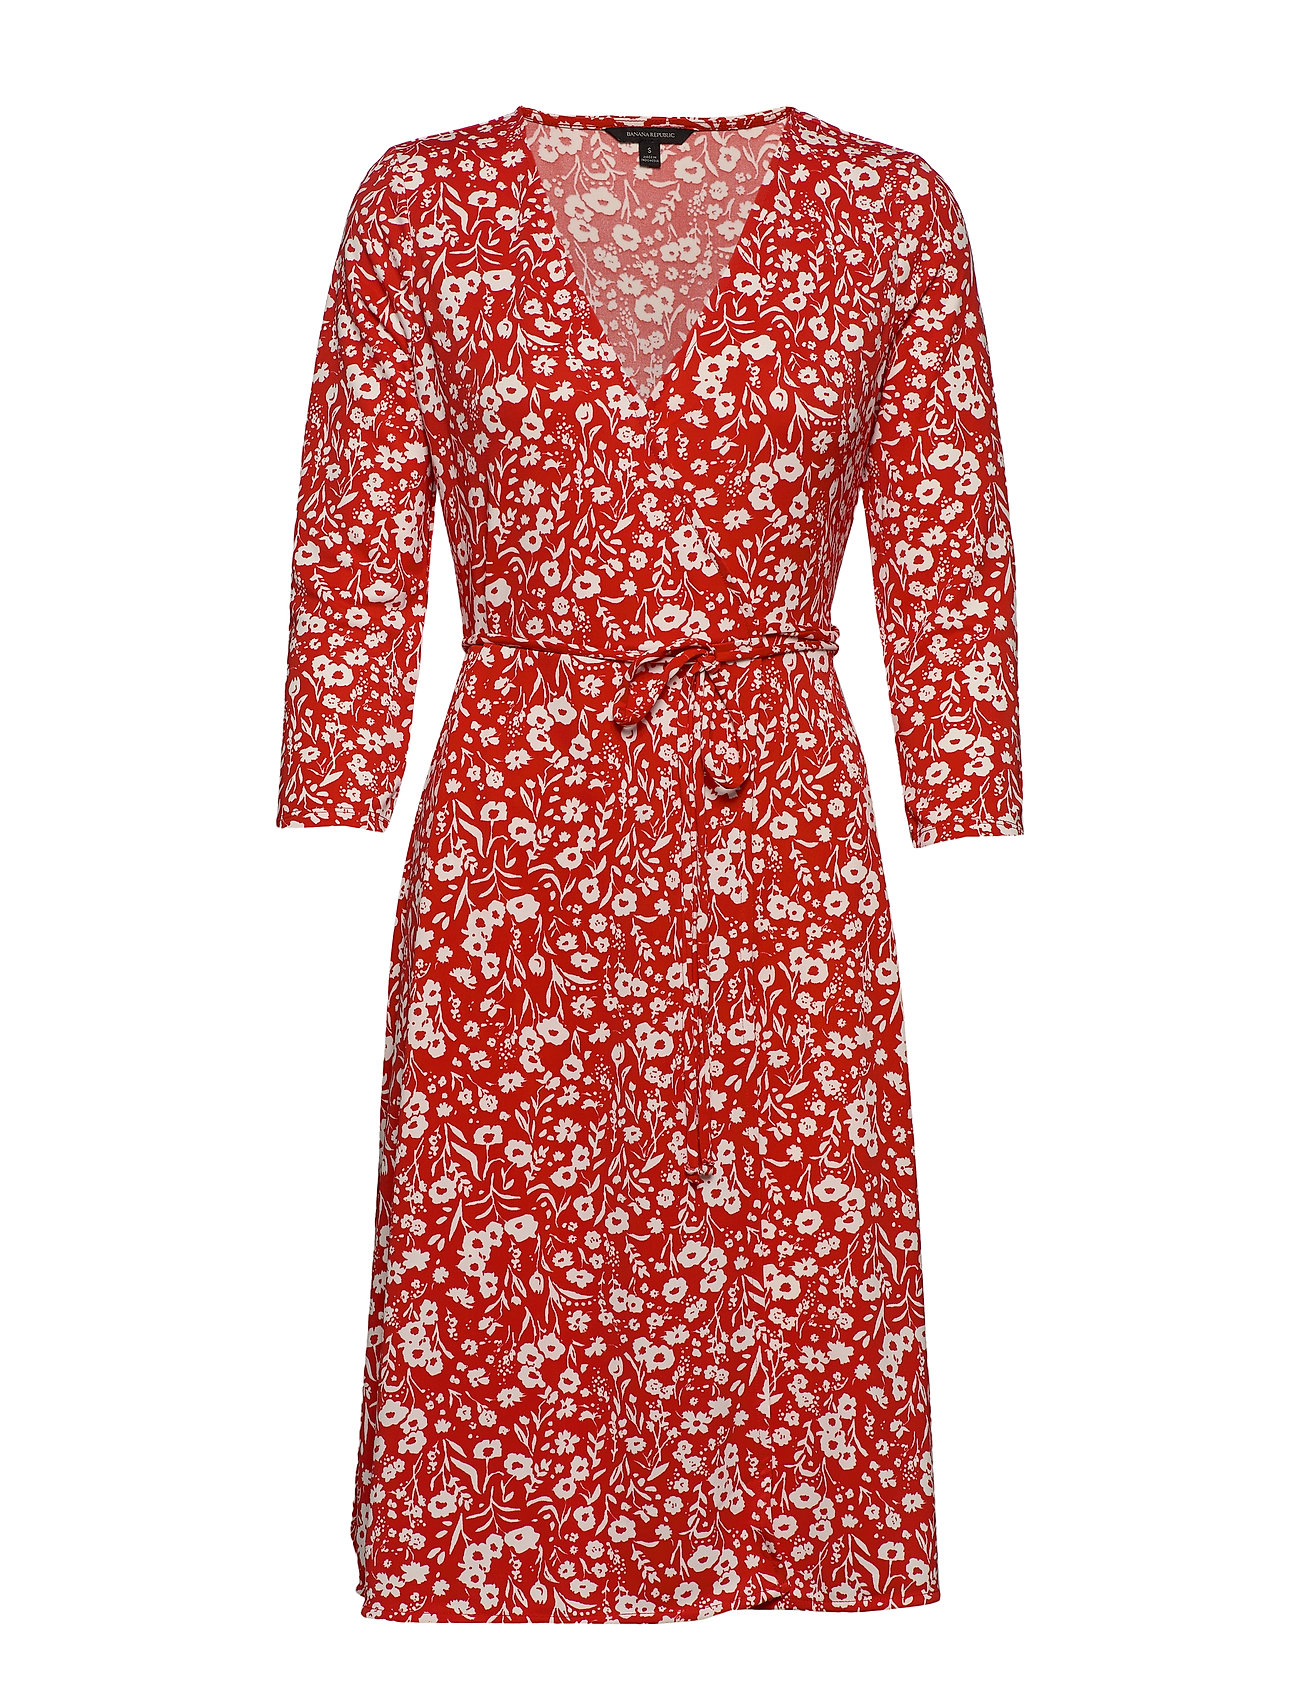 Banana Republic Print Wrinkle-Resistant Wrap Dress - PINK FLORAL